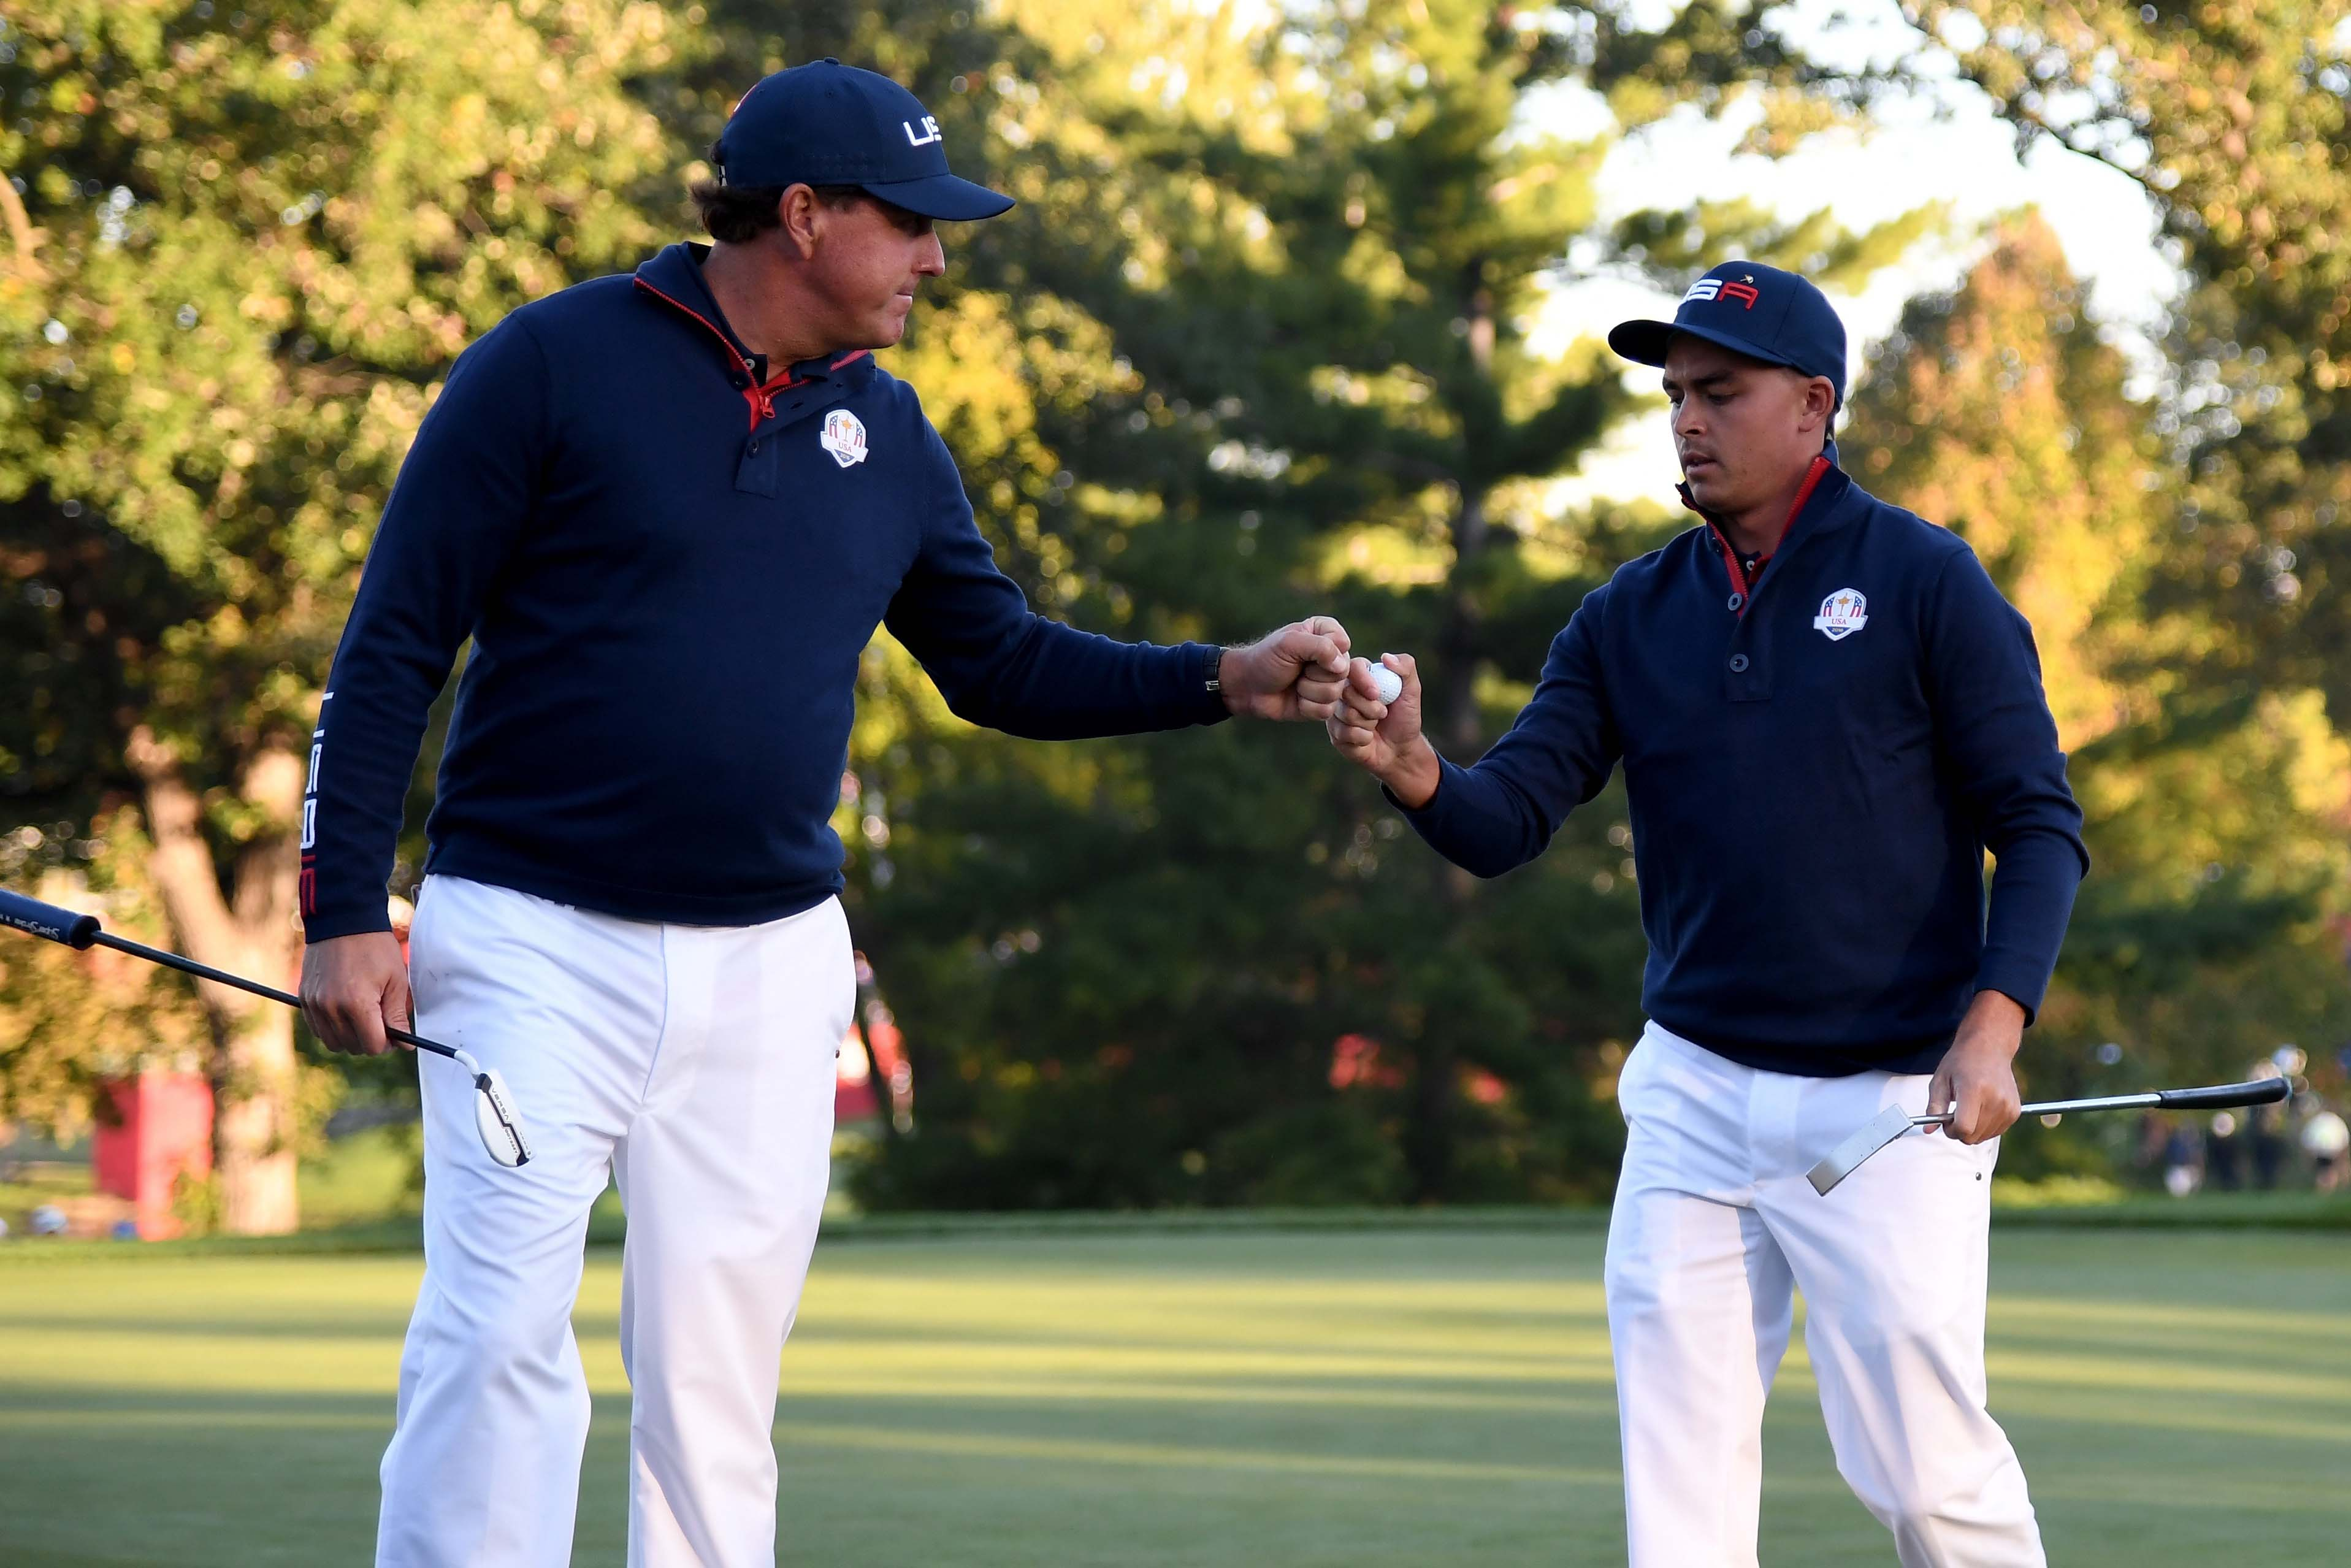 Phil Mickelson and Rickie Fowler